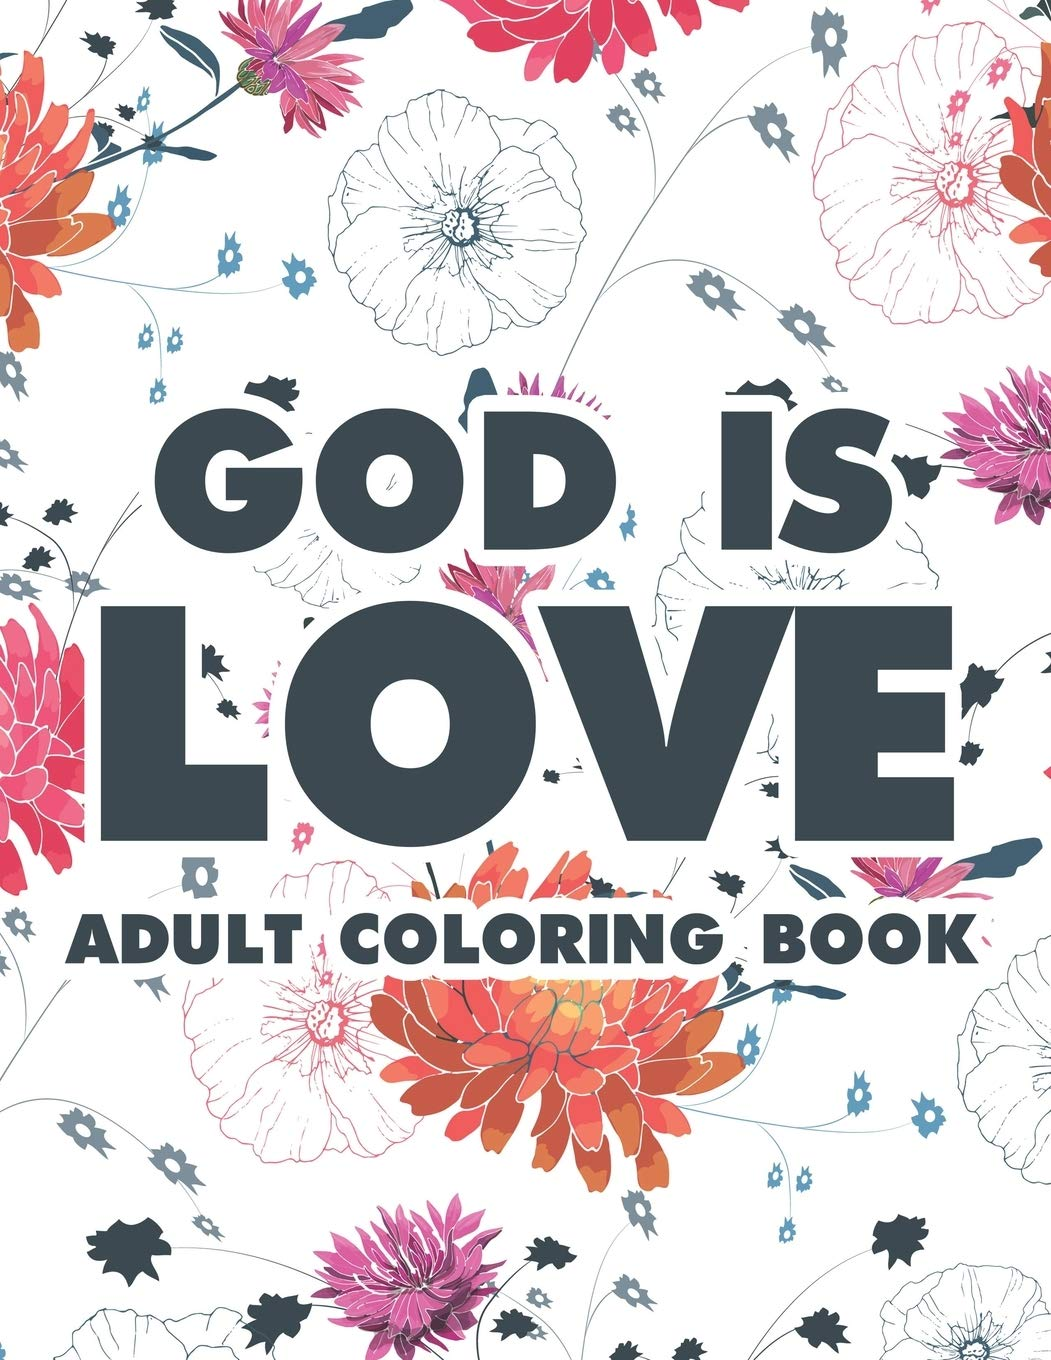 Buy God Is Love Adult Coloring Book Christian Coloring Book For Women Floral Coloring Pages With Bible Verses To Calm The Mind And Soothe The Soul Self Care Gifts Book Online At Low